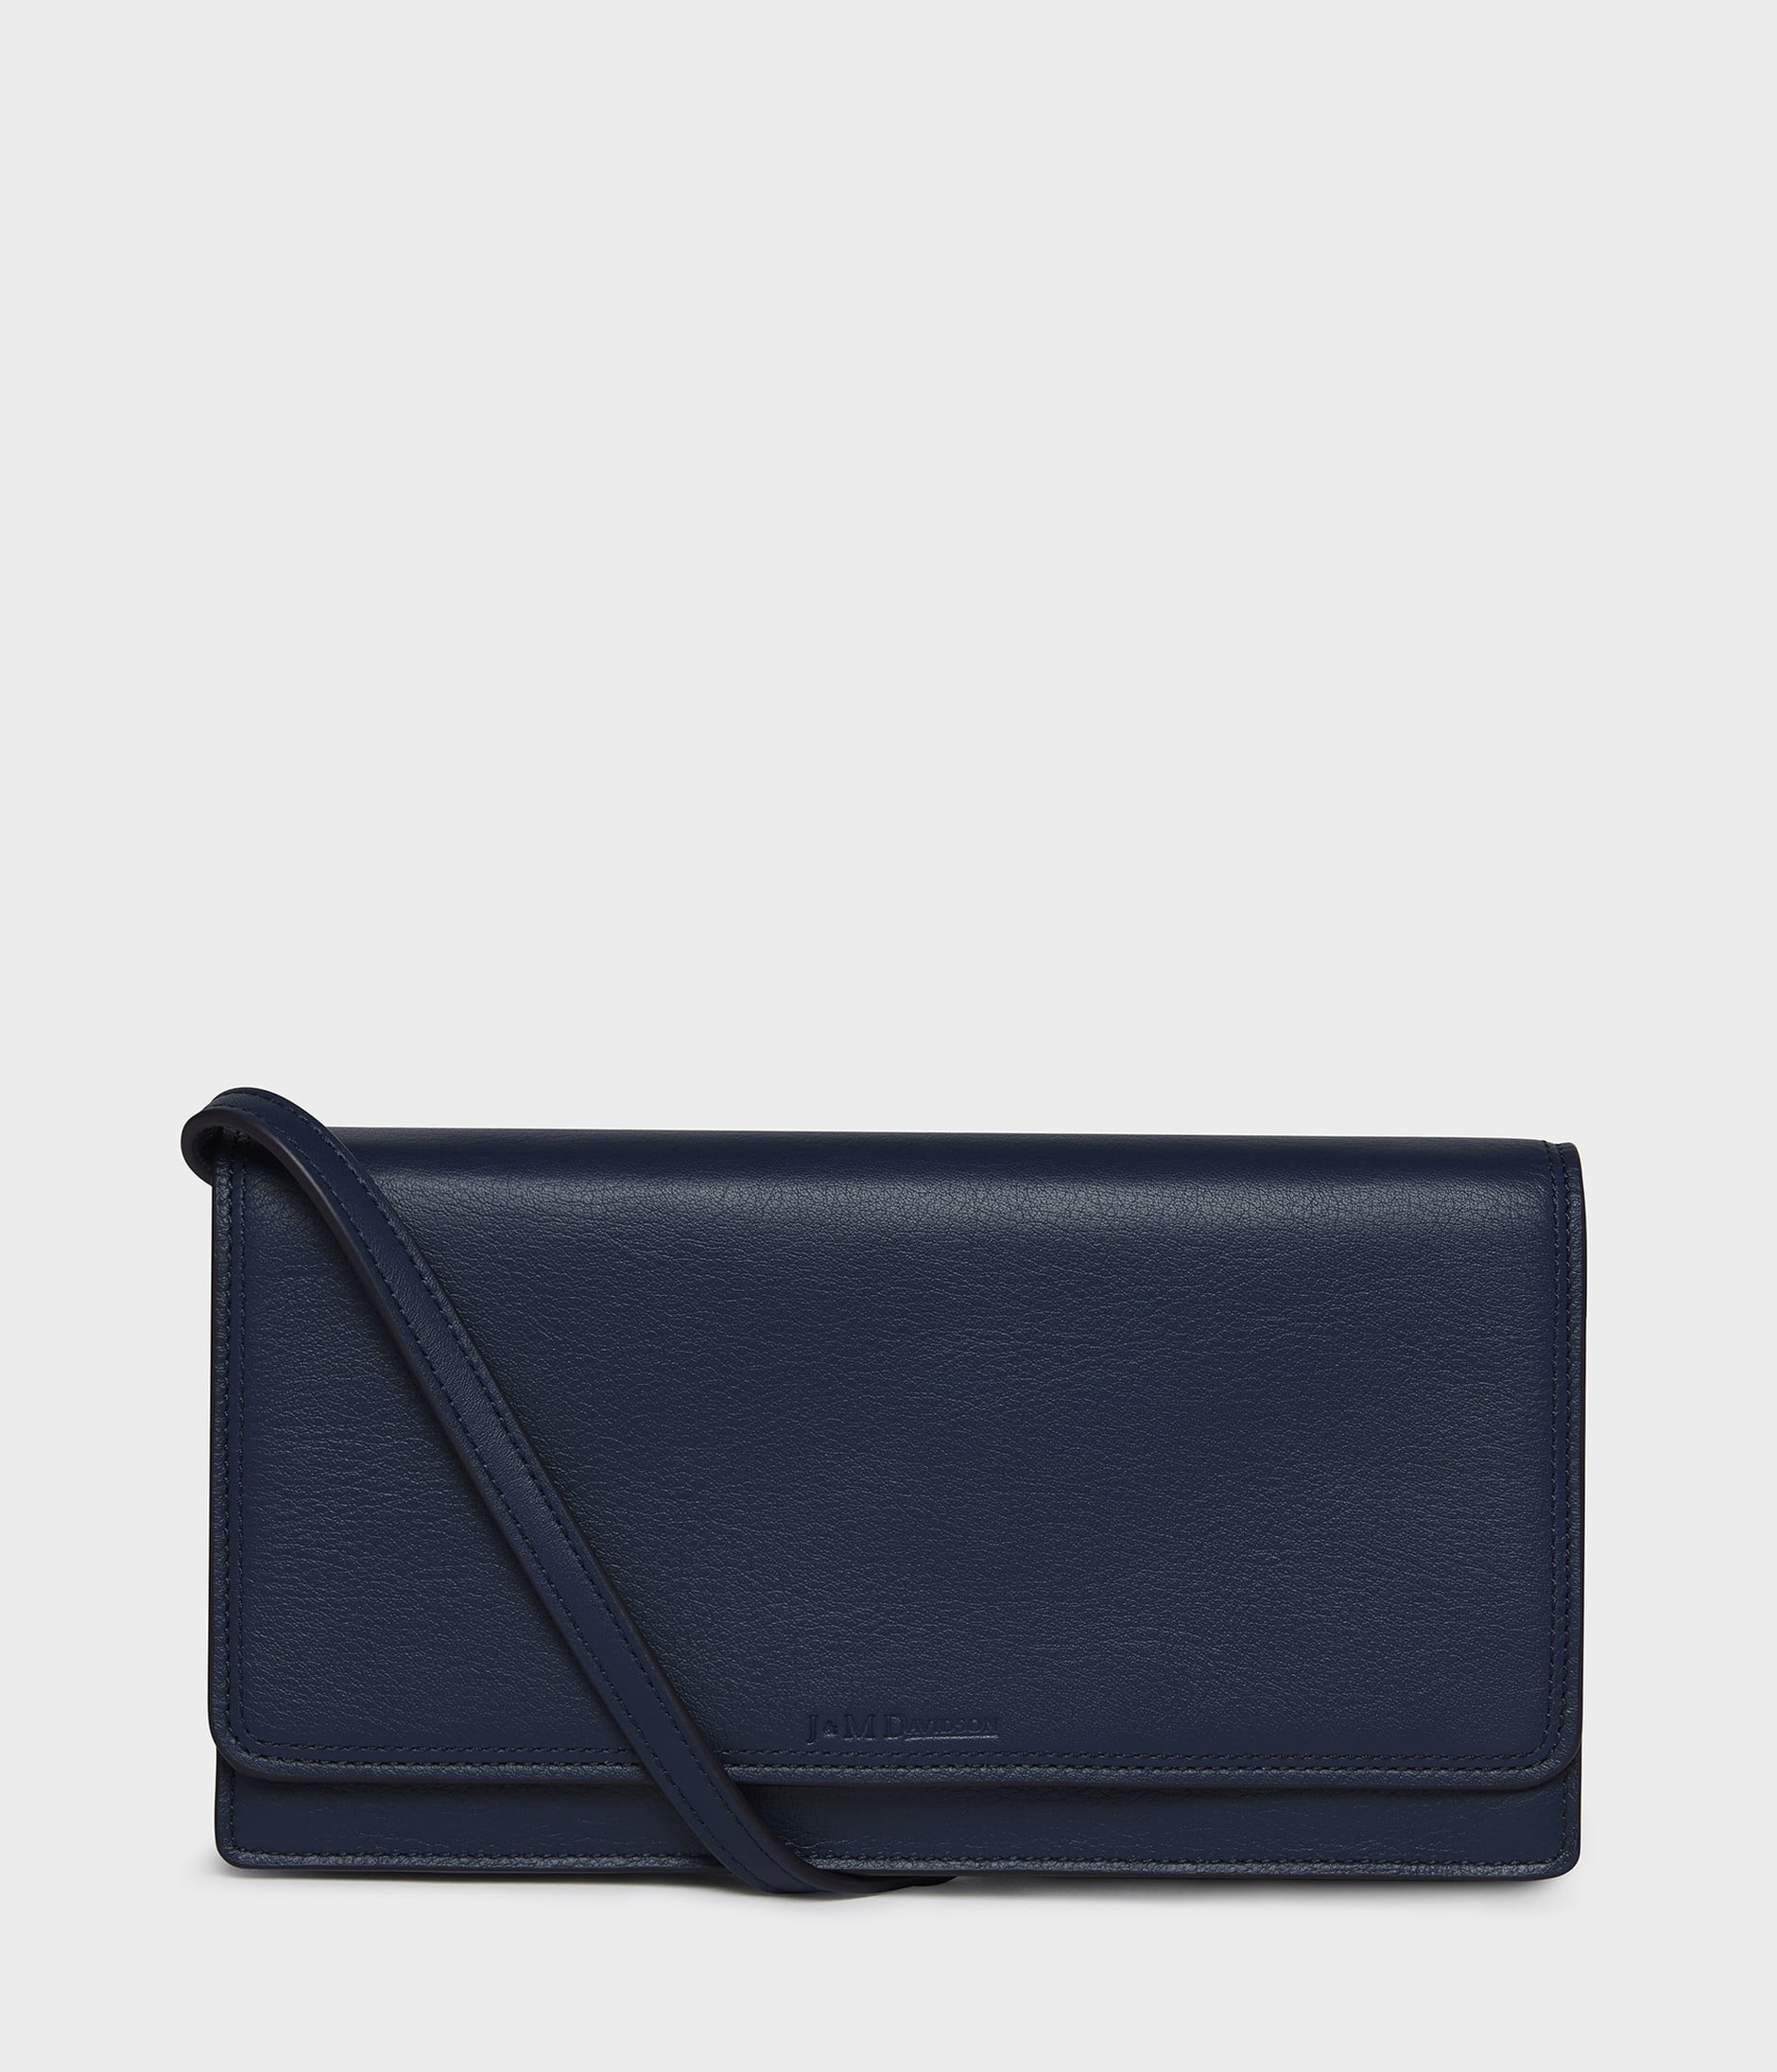 E/W CROSSBODY WALLET 詳細画像 MIDNIGHT 1